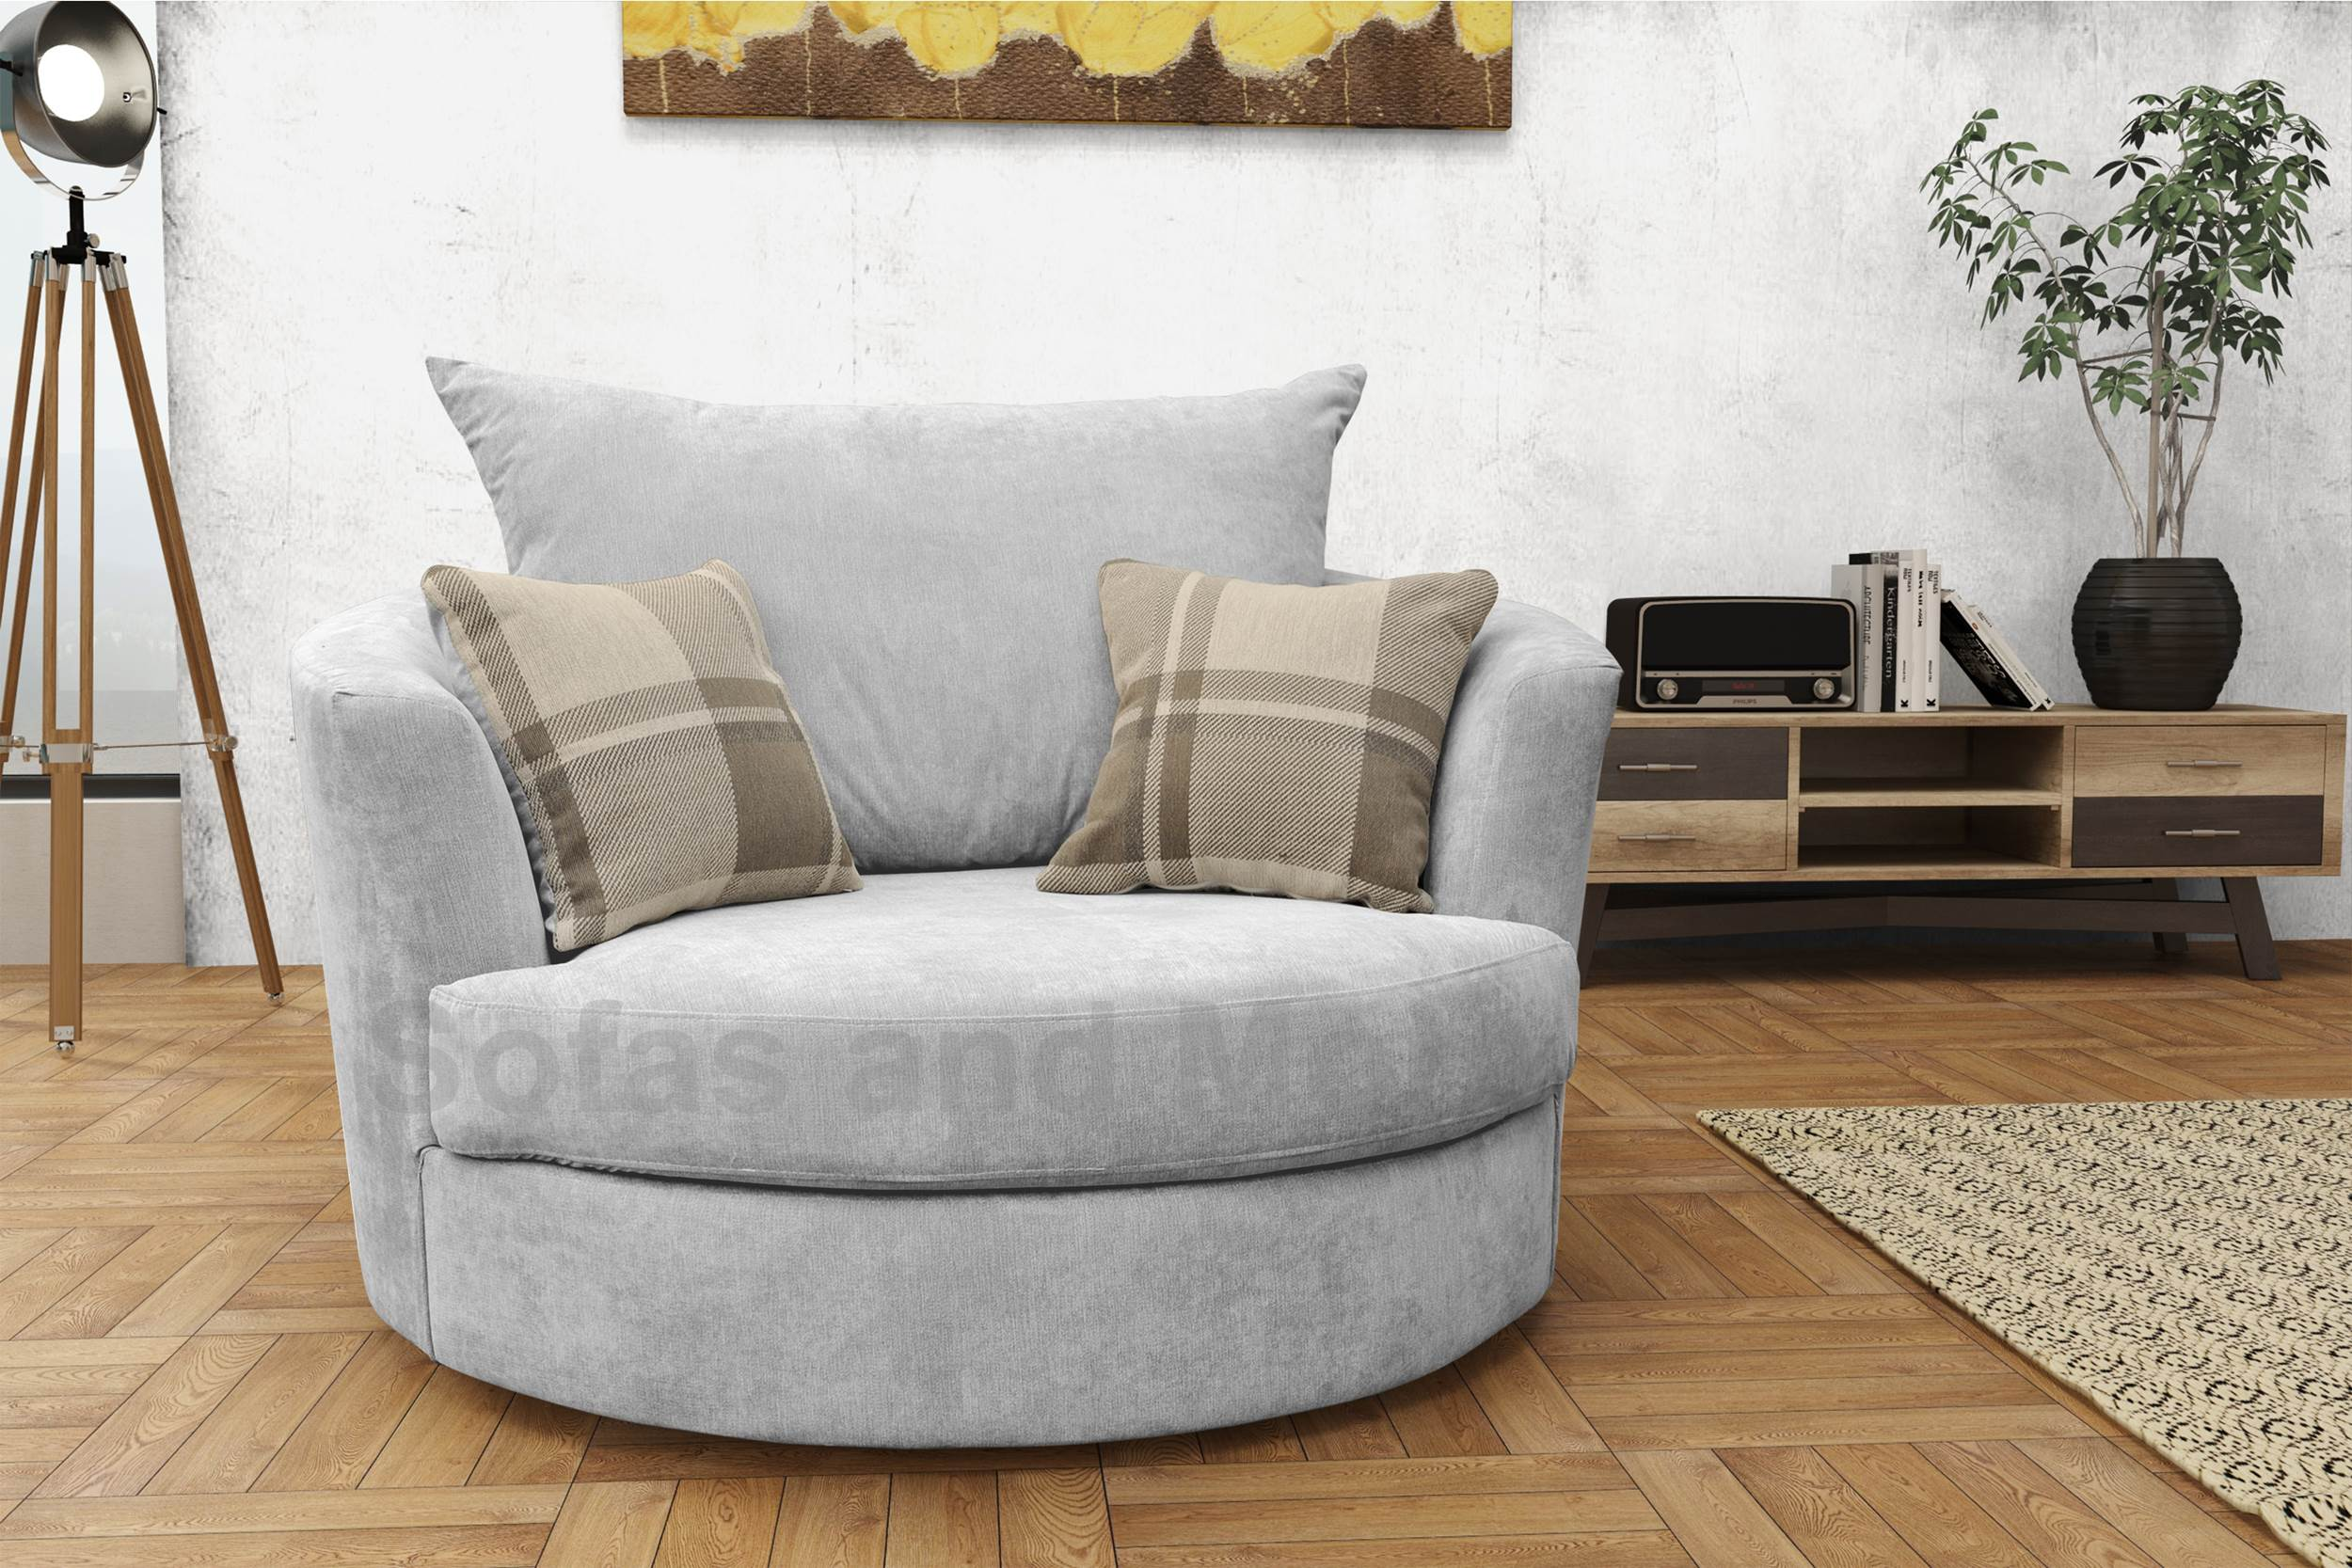 Small Swivel Cuddle Chair Full Size Of Big Round Swivel